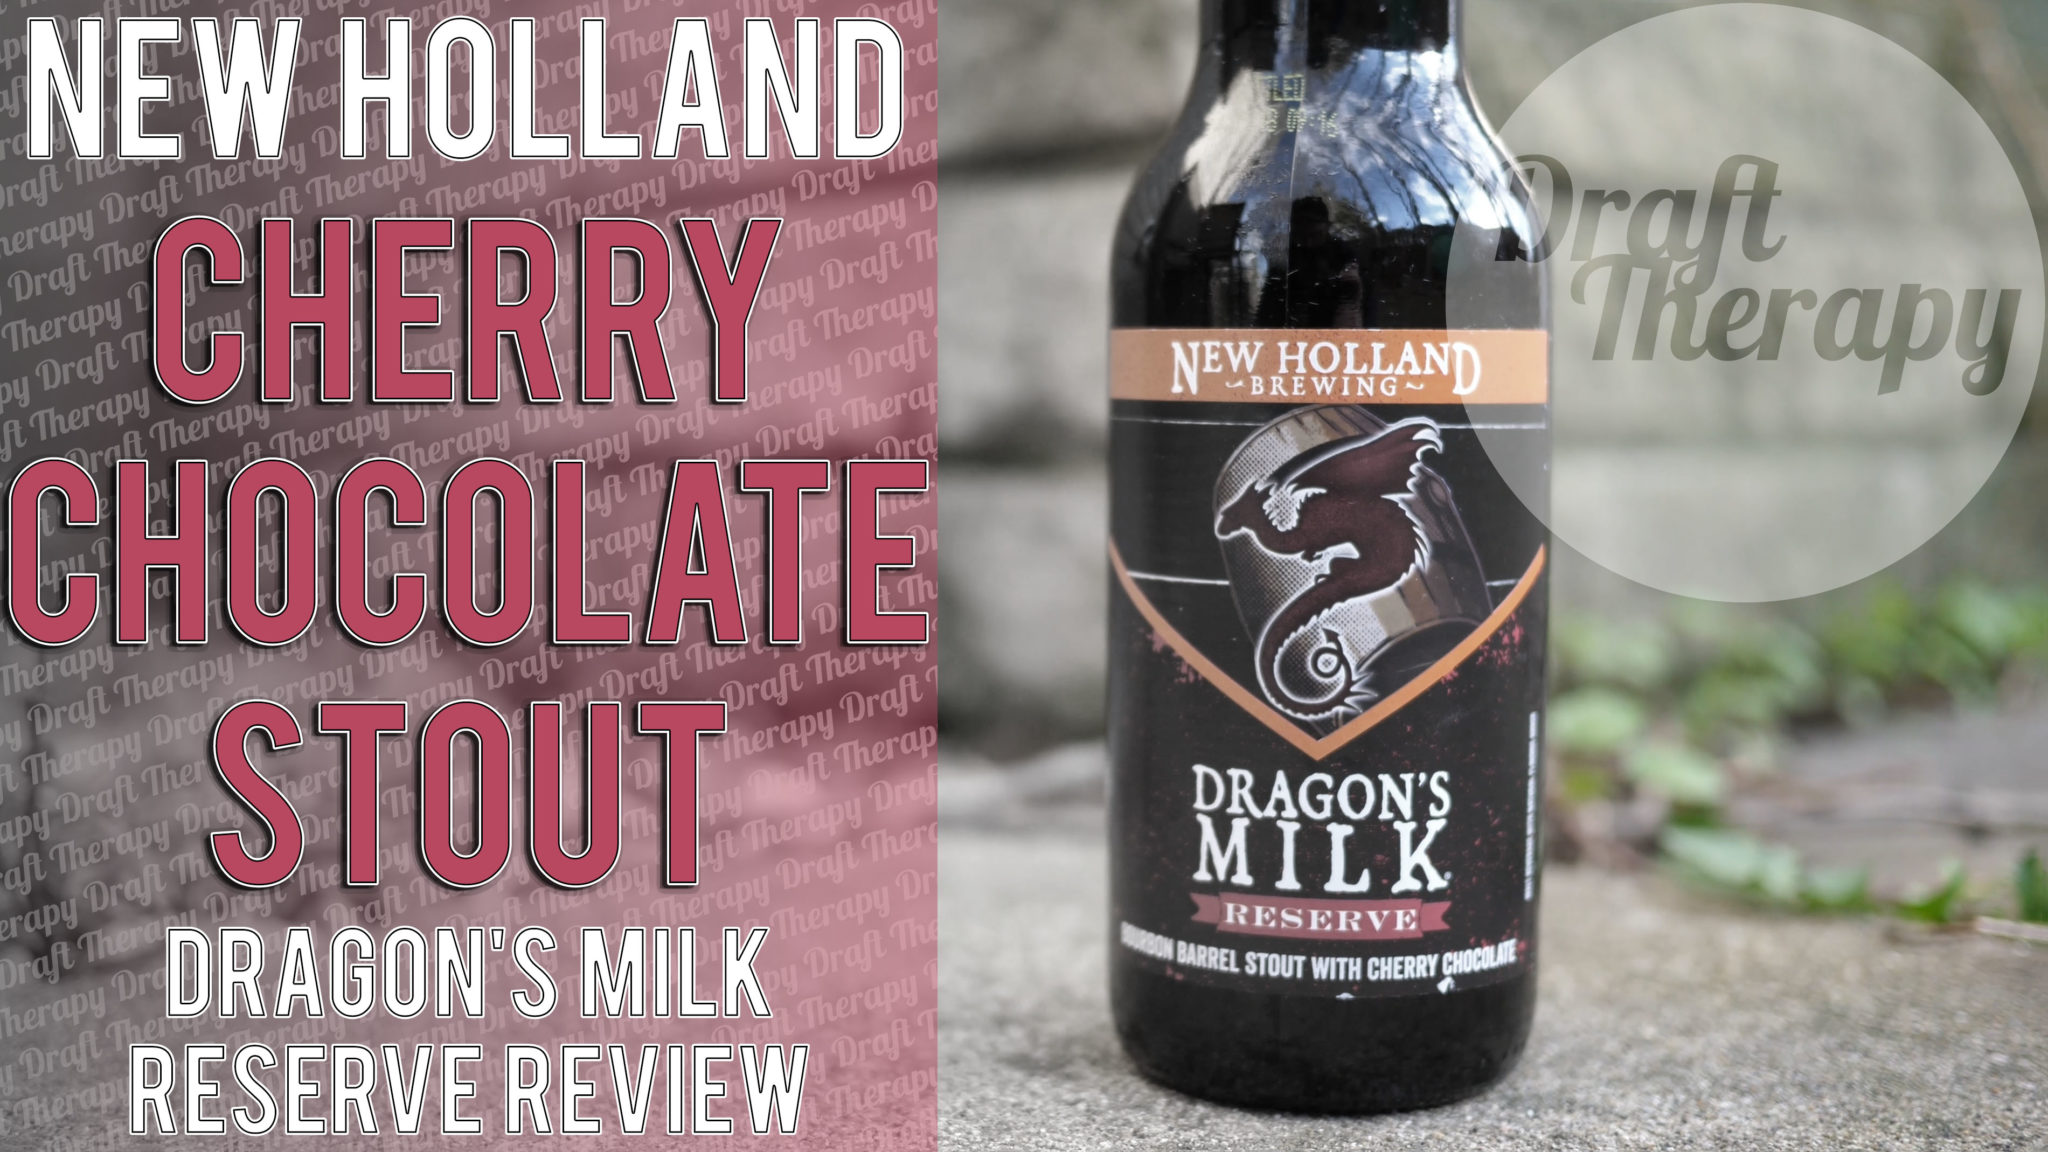 New Holland – Dragon's Milk Reserve Cherry Chocolate Stout